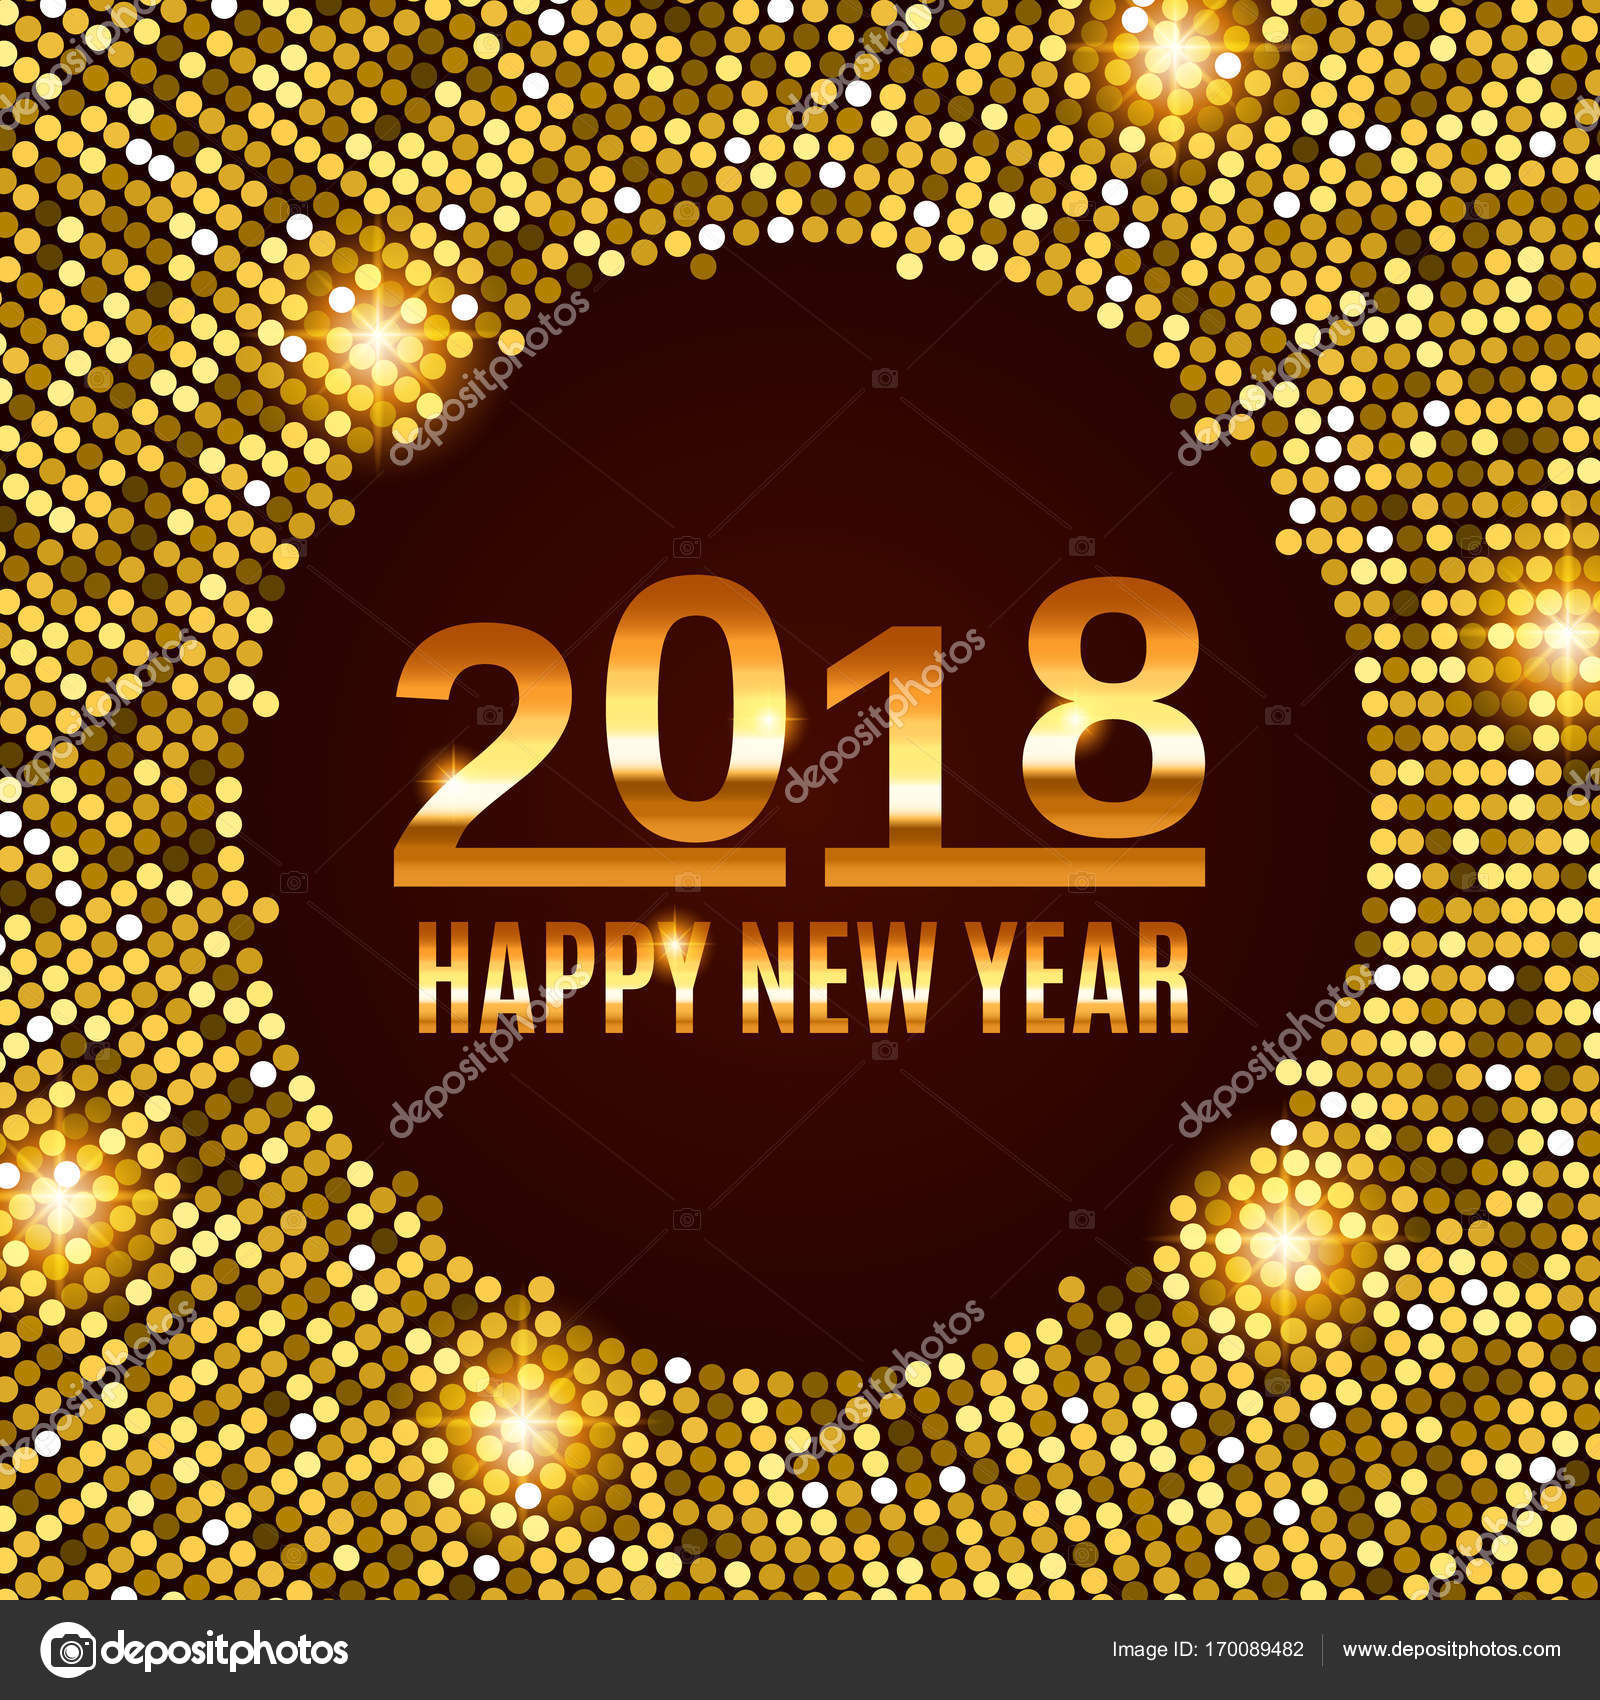 new year 2018 celebration background stock vector